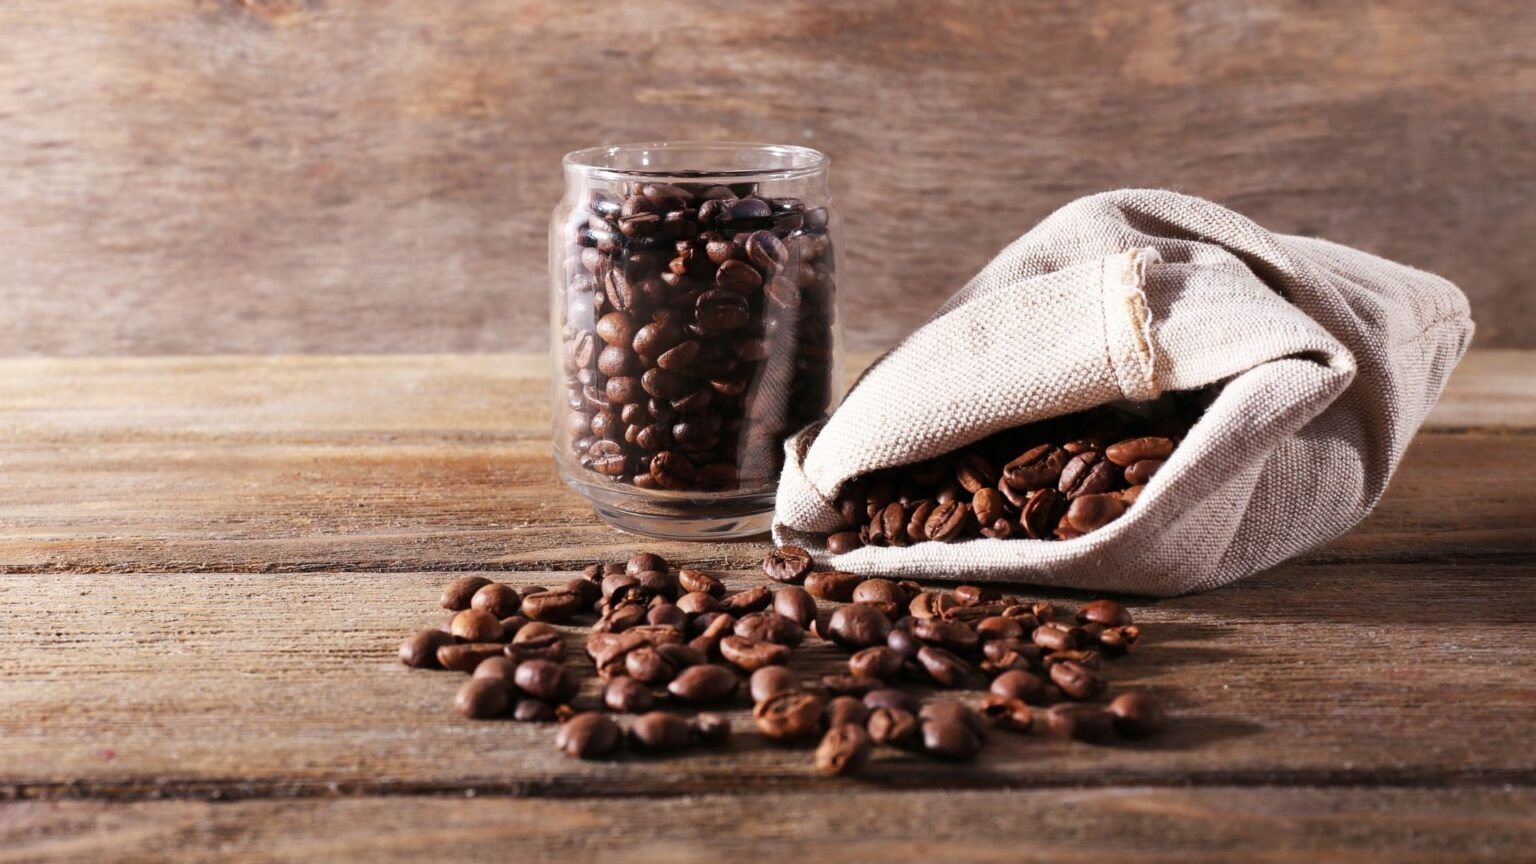 Which Can for Coffee is Better Choice by Material